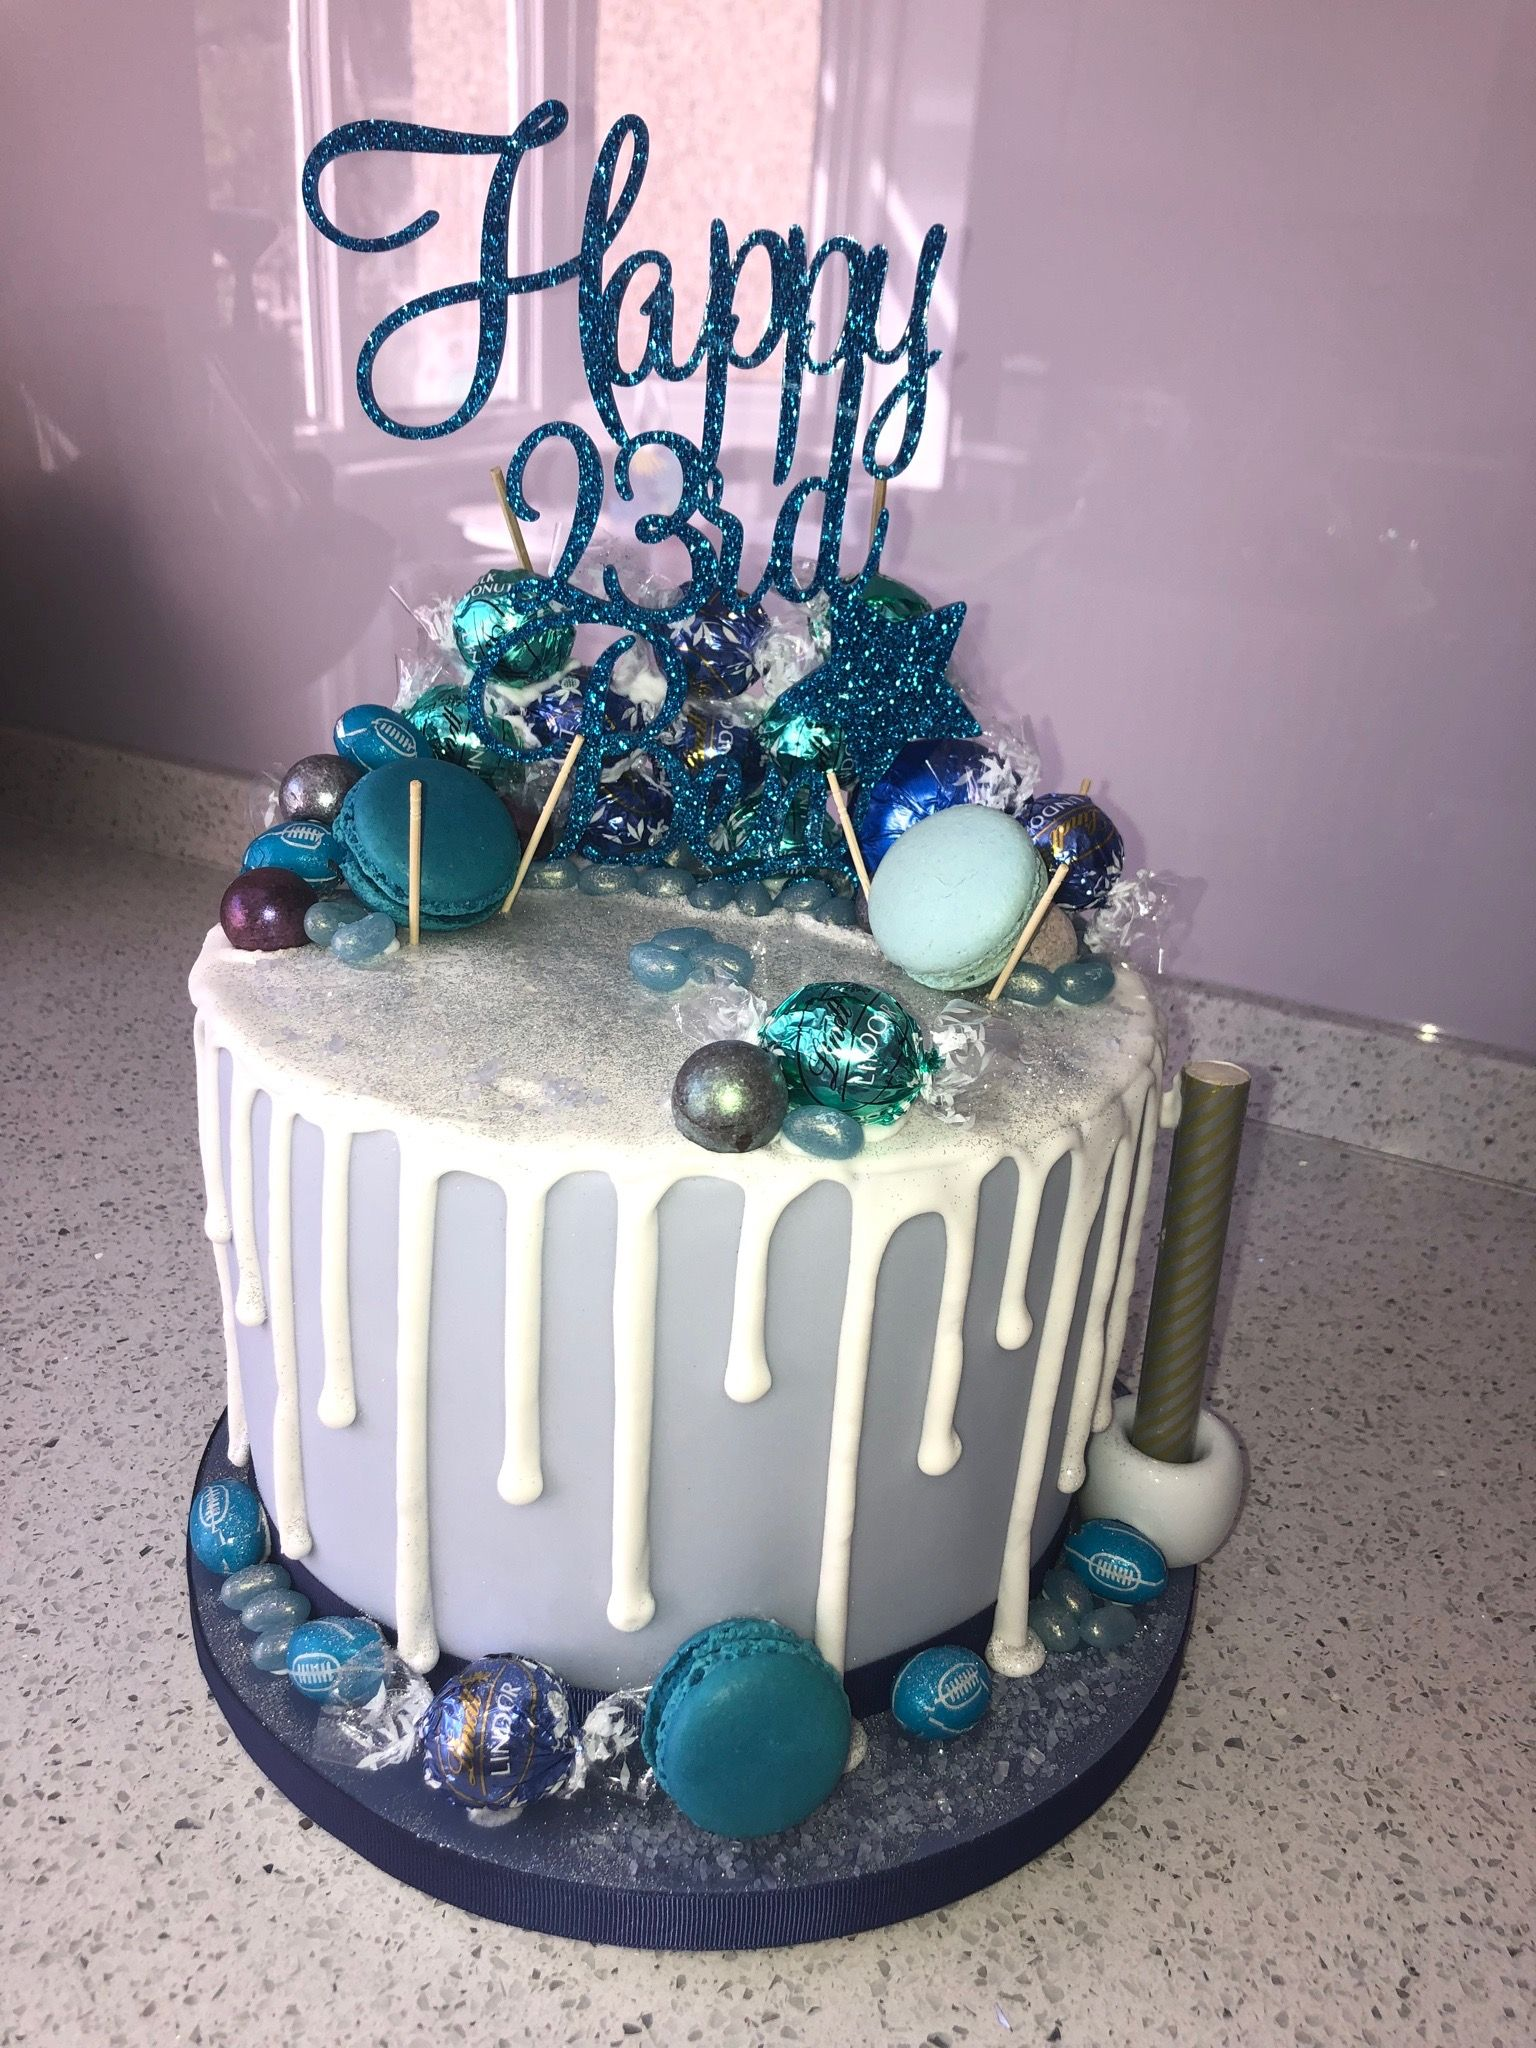 Pin By Lexi Brassil On Birthday Ideas In 2020 23 Birthday Cake